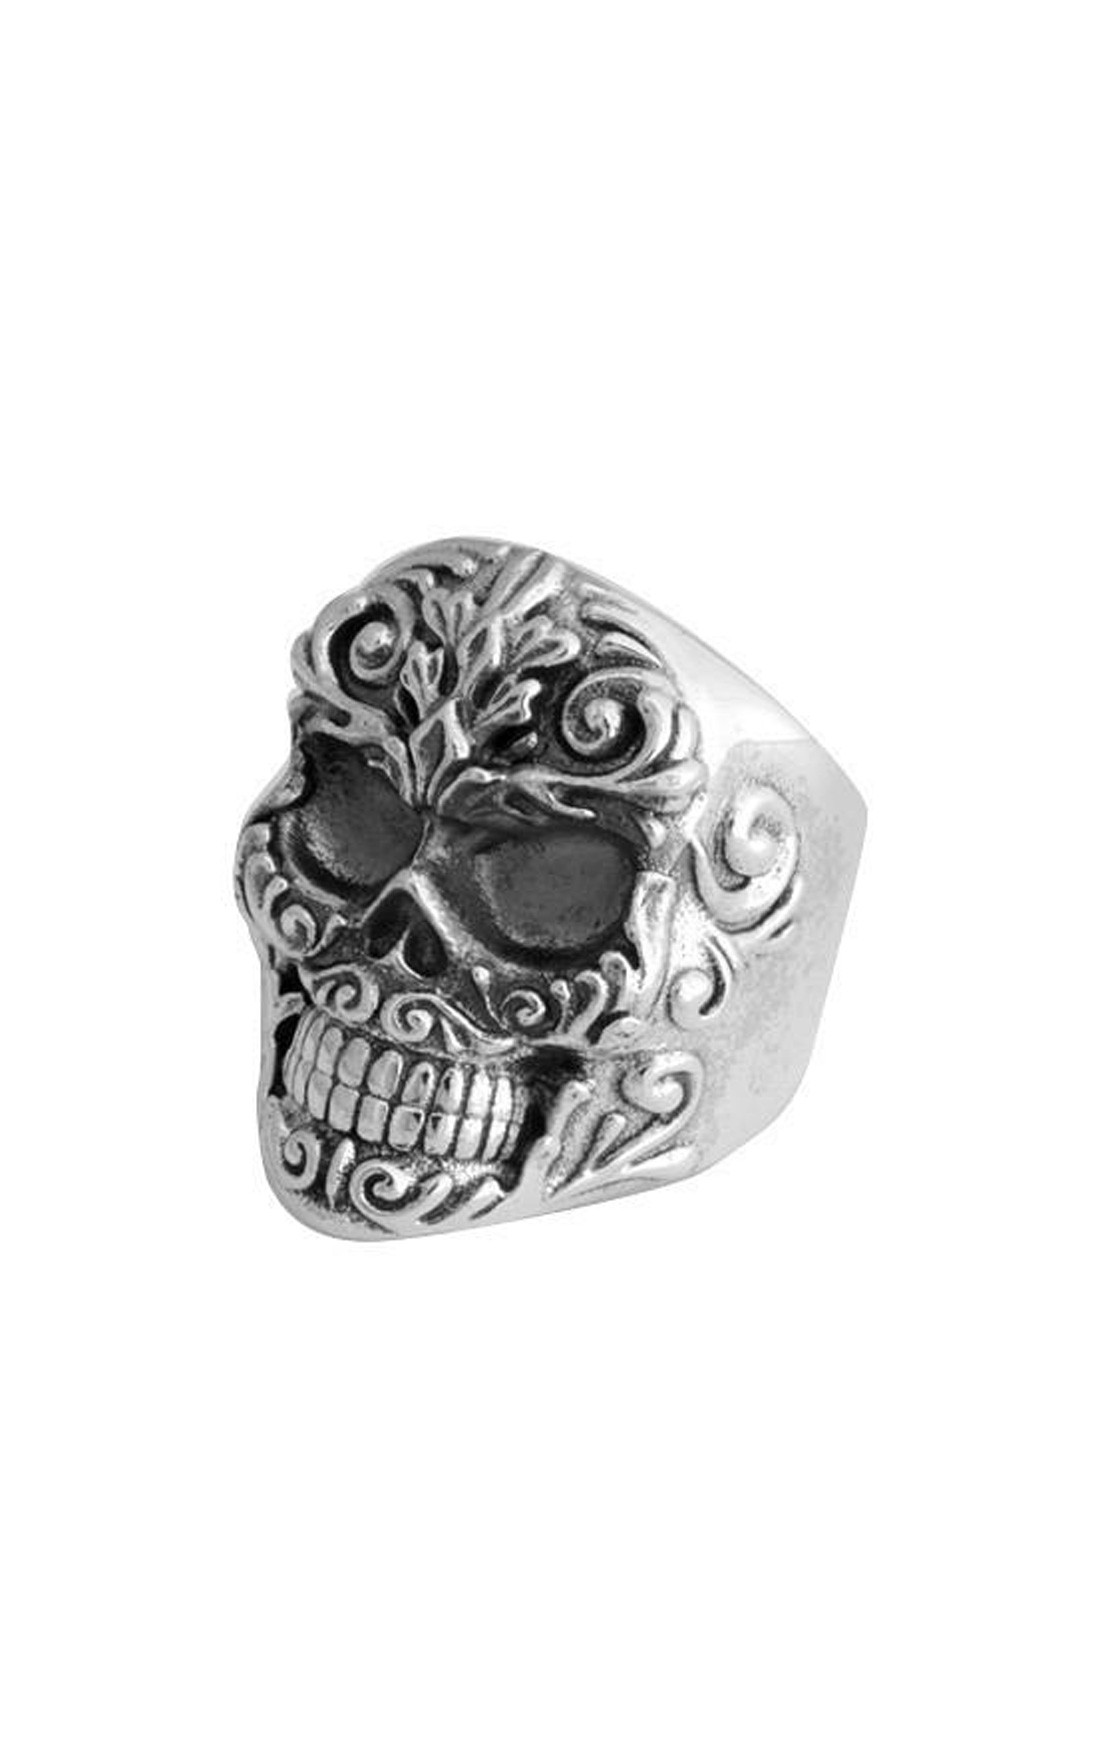 King Baby - Floral Scroll Relief Skull Ring (K20-5934)